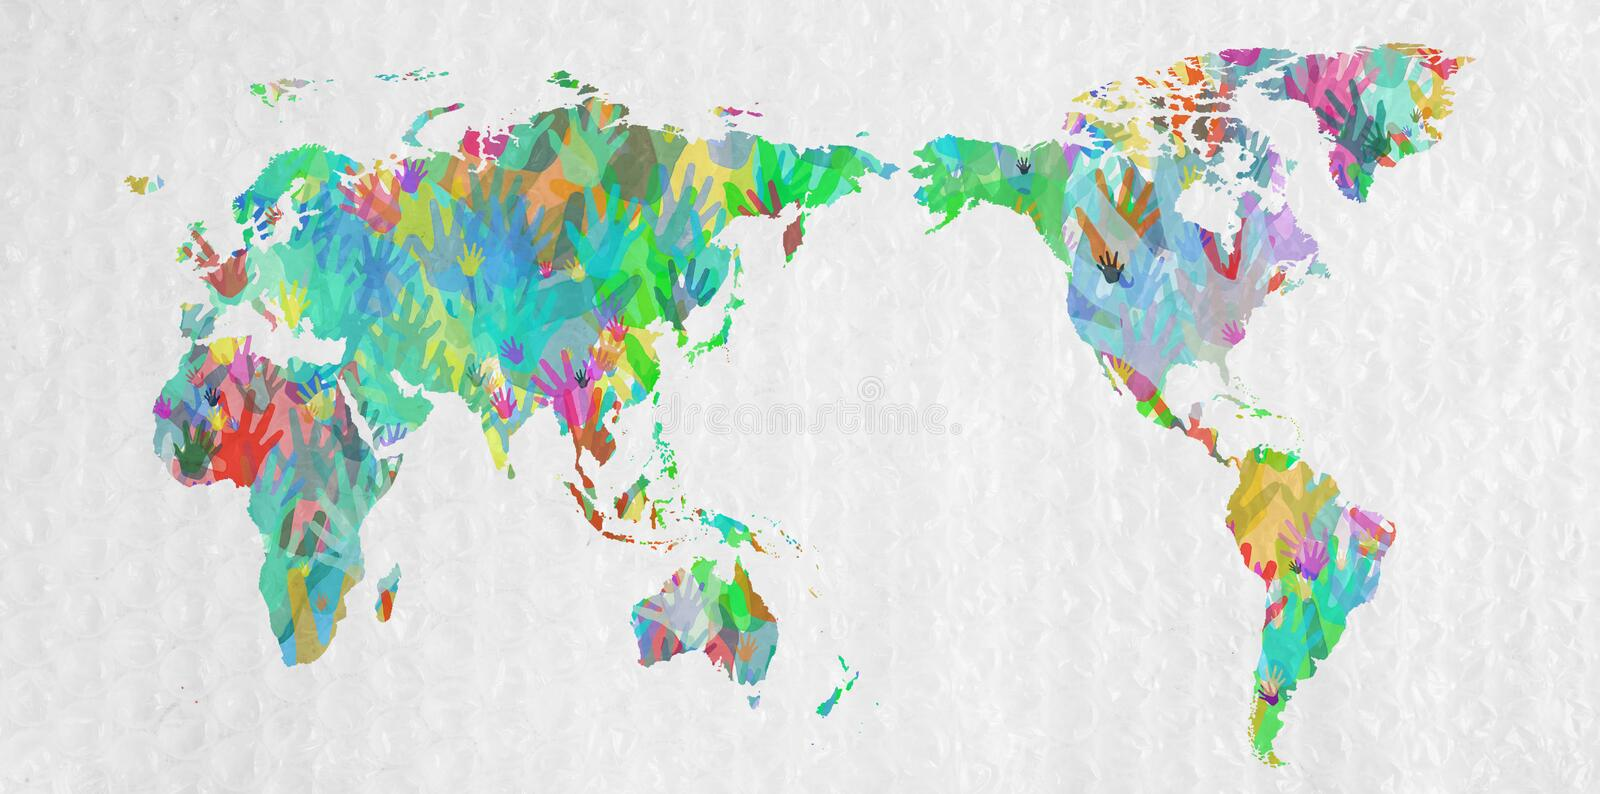 World map with hands in different colors stock photo image 40256314 download world map with hands in different colors stock photo image 40256314 gumiabroncs Images